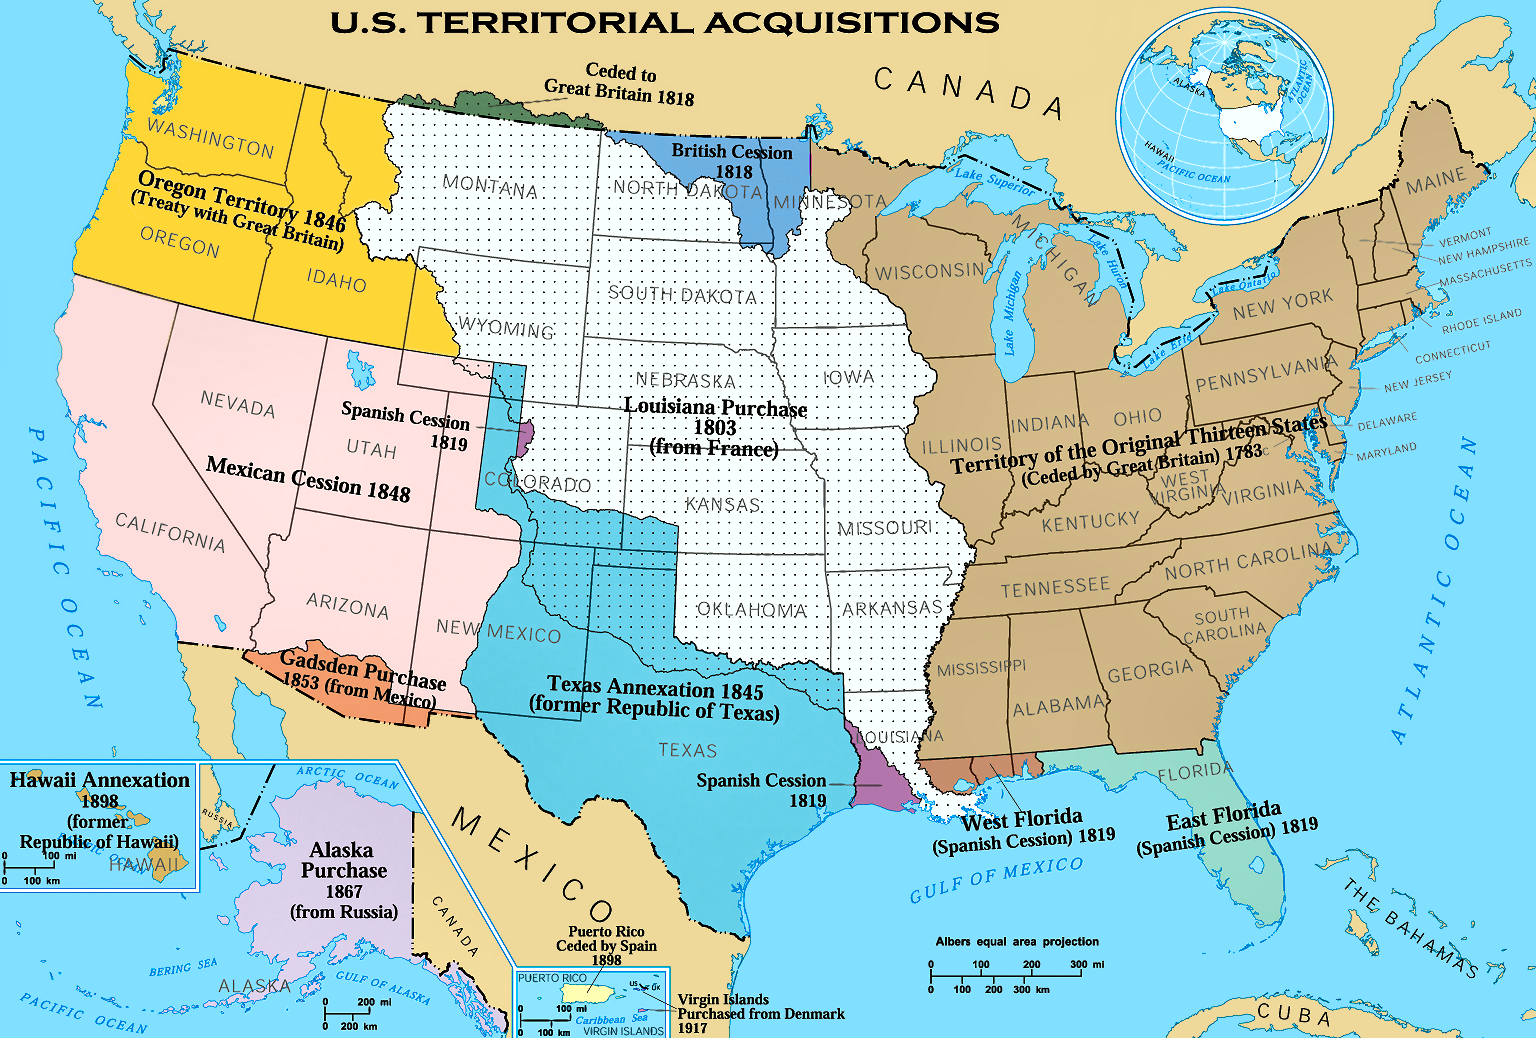 FileUS Territorial Acquisitionspng Wikimedia Commons - Us Map Territories